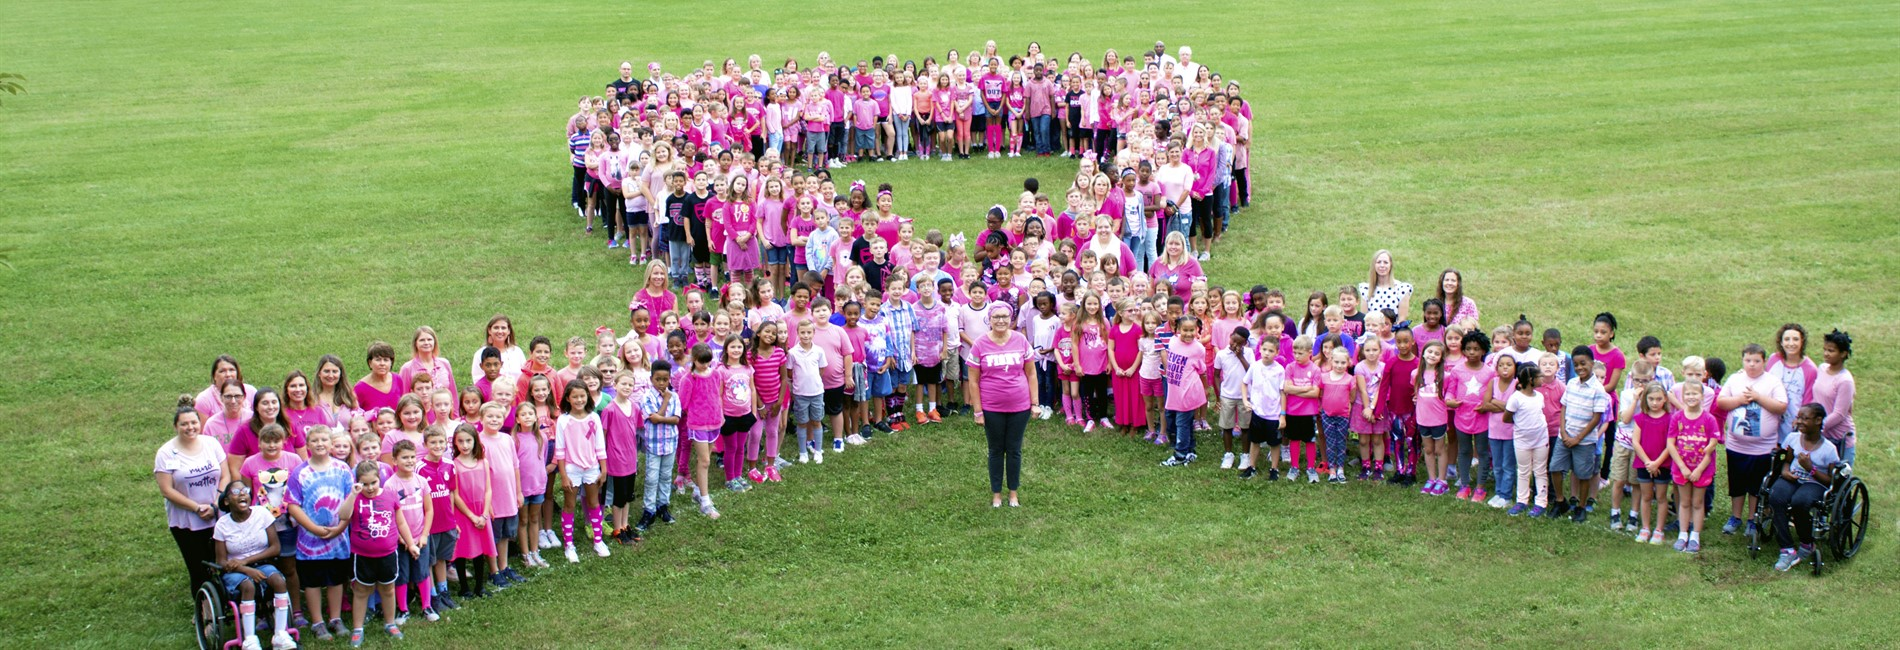 Pink Ribbon of Students